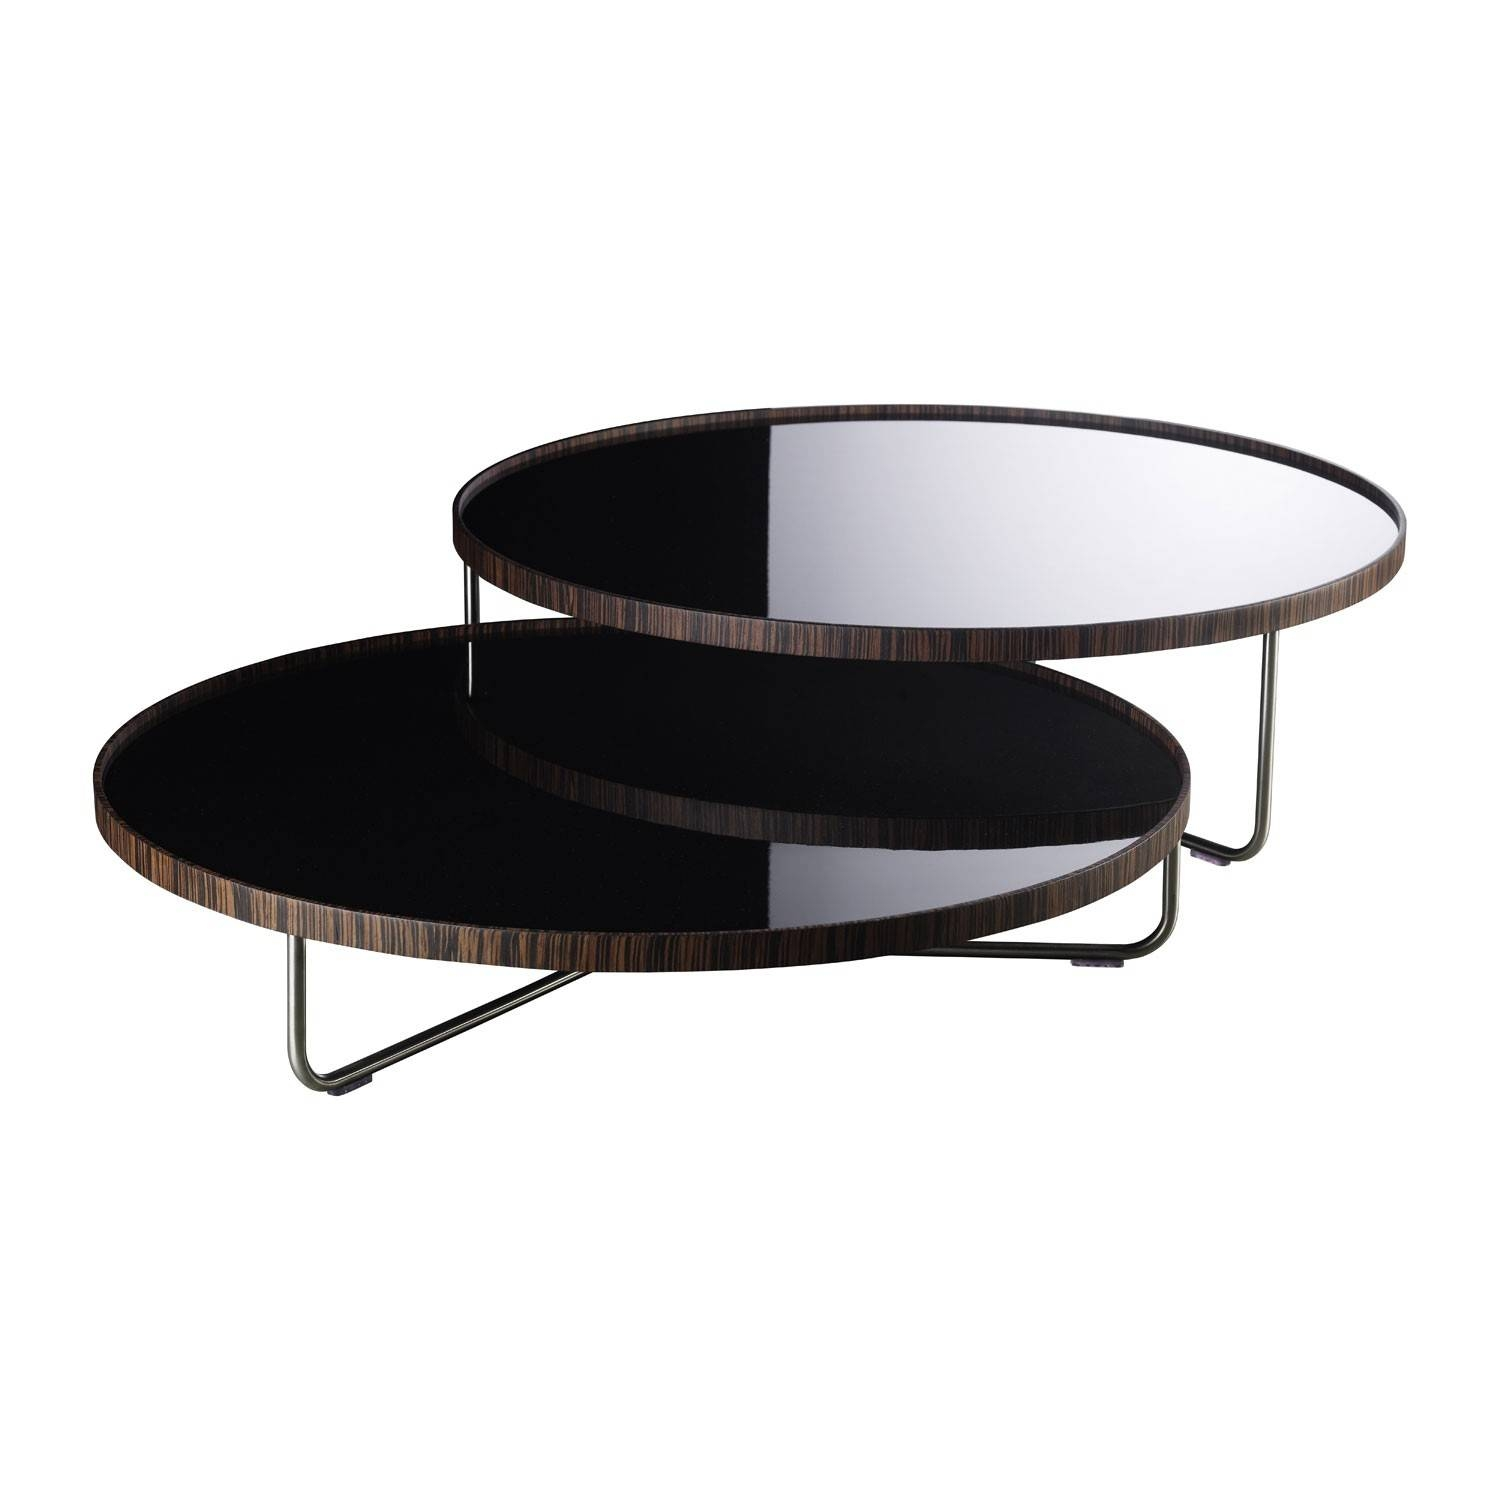 Furniture: Nesting Coffee Table With A Stylish Unique Contemporary with regard to Nest Coffee Tables (Image 11 of 30)